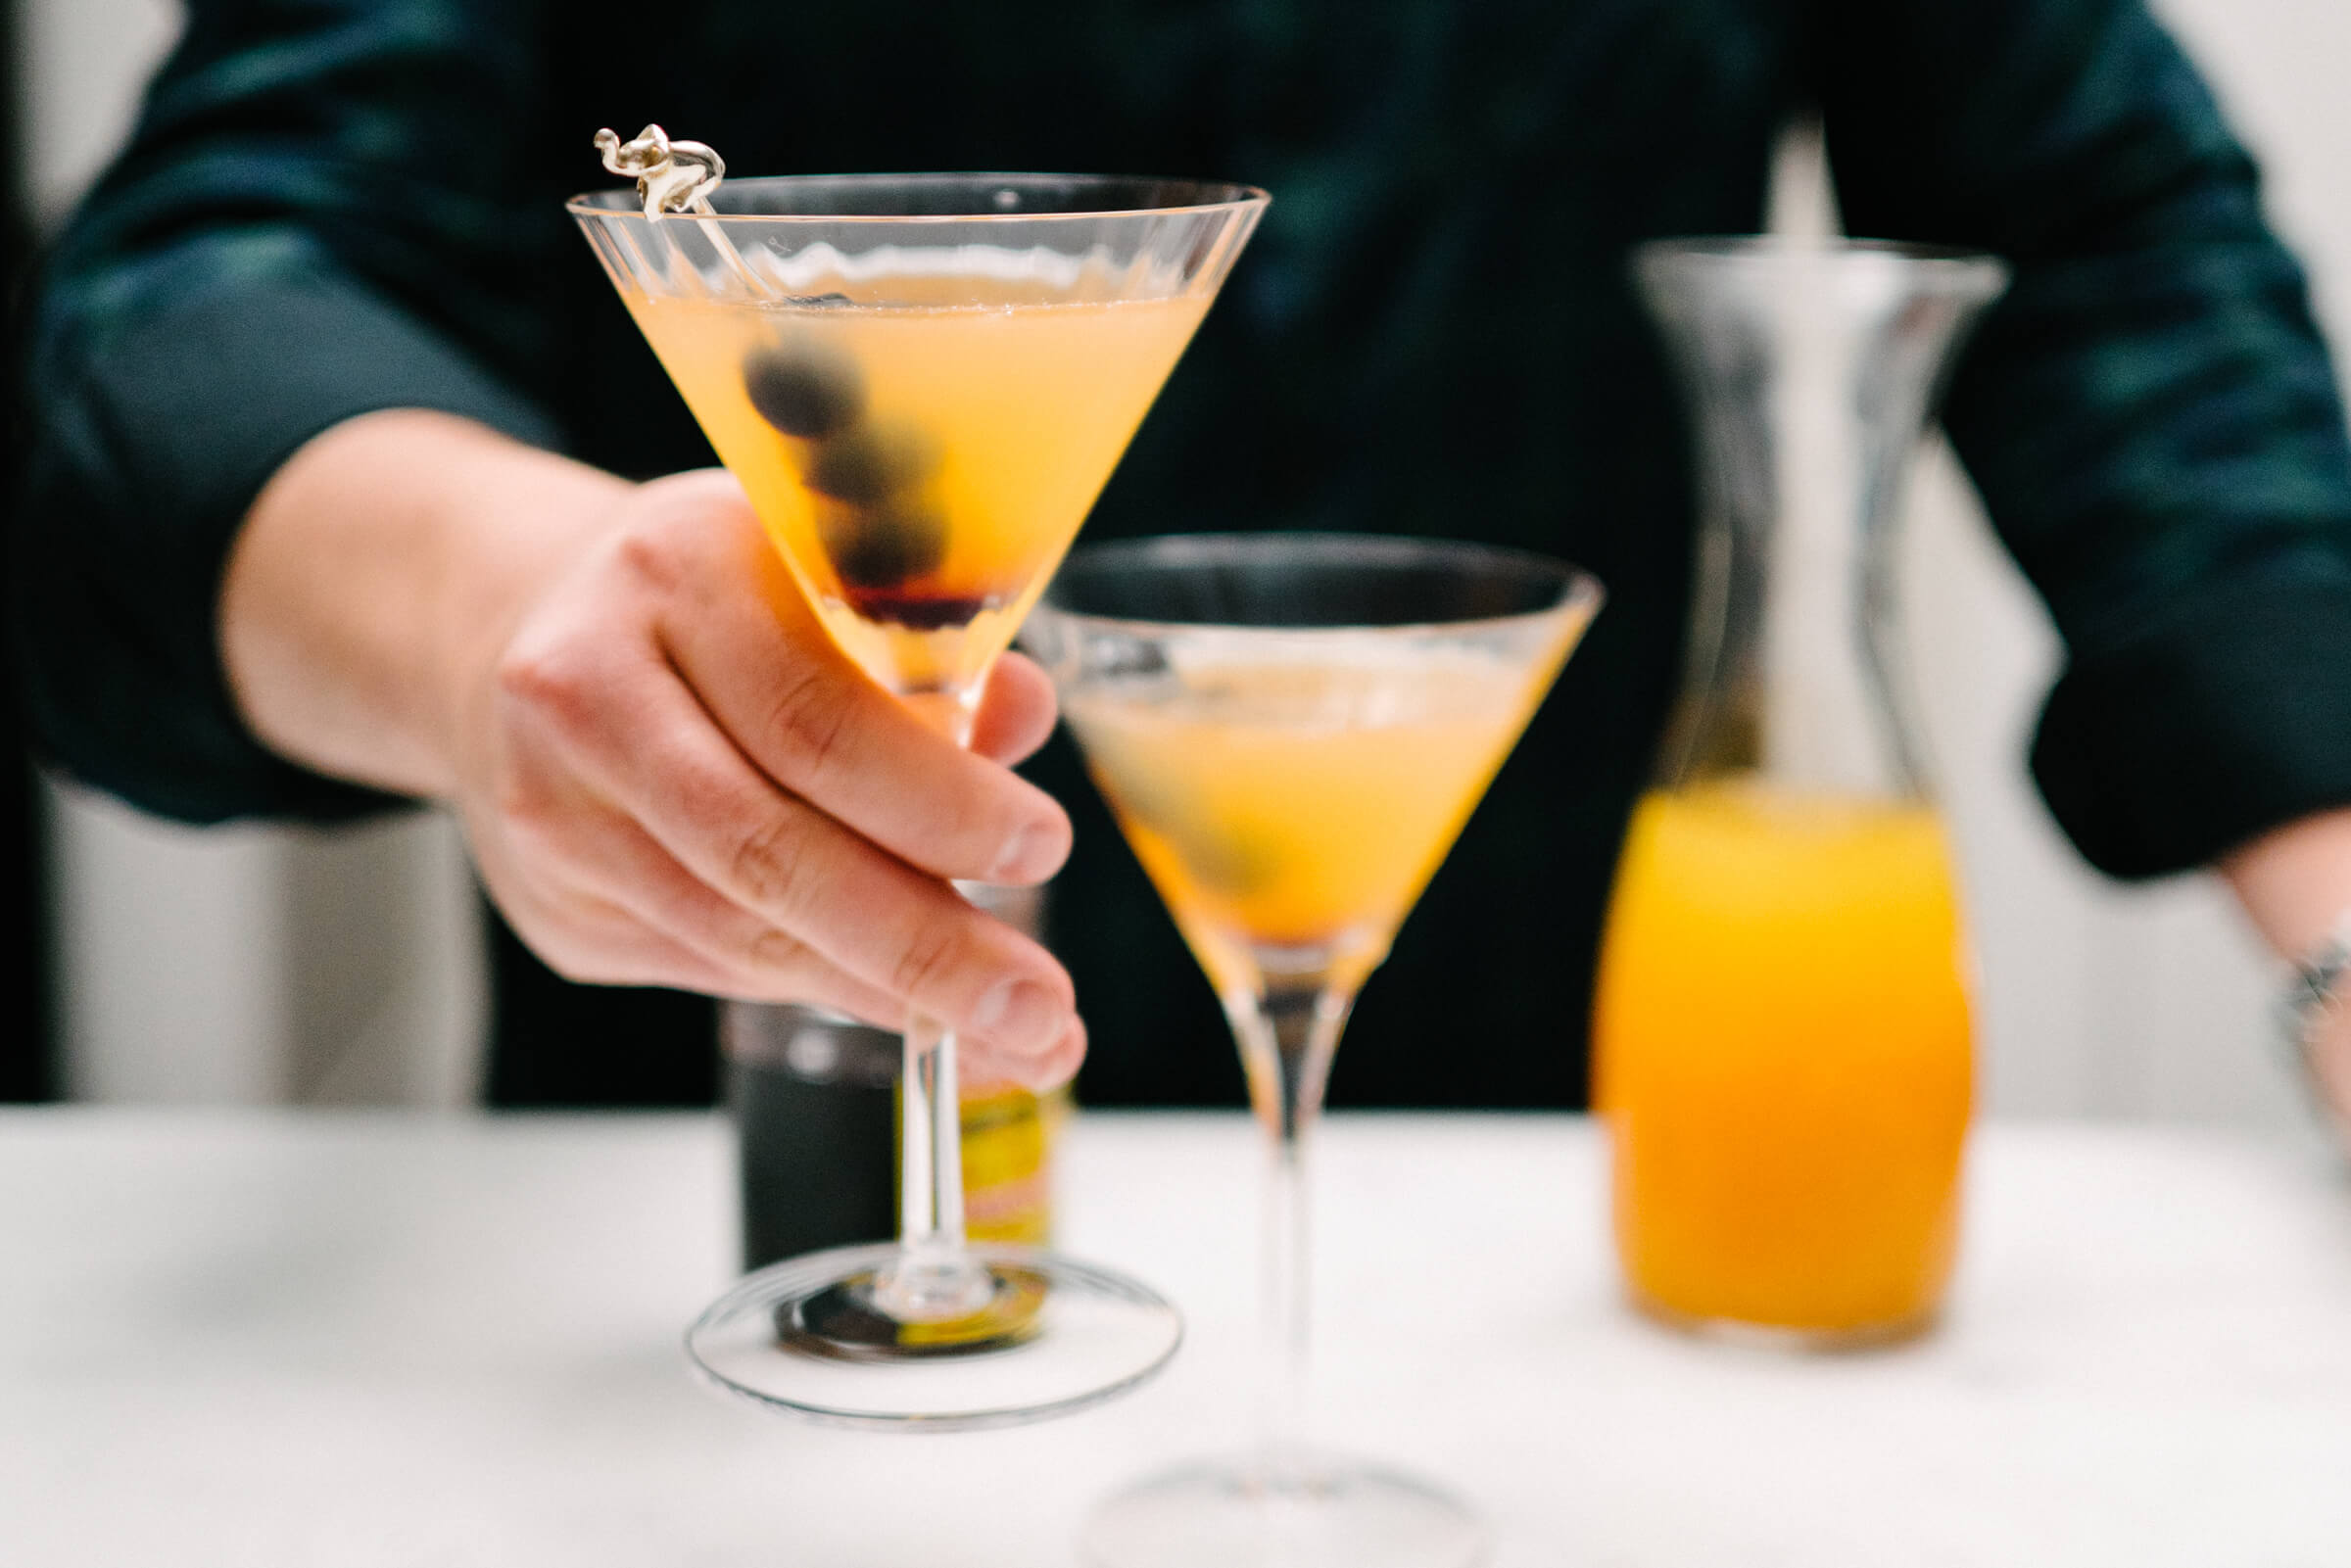 The Abbey Cocktail is a martini cocktail from the Savoy Cocktail Book